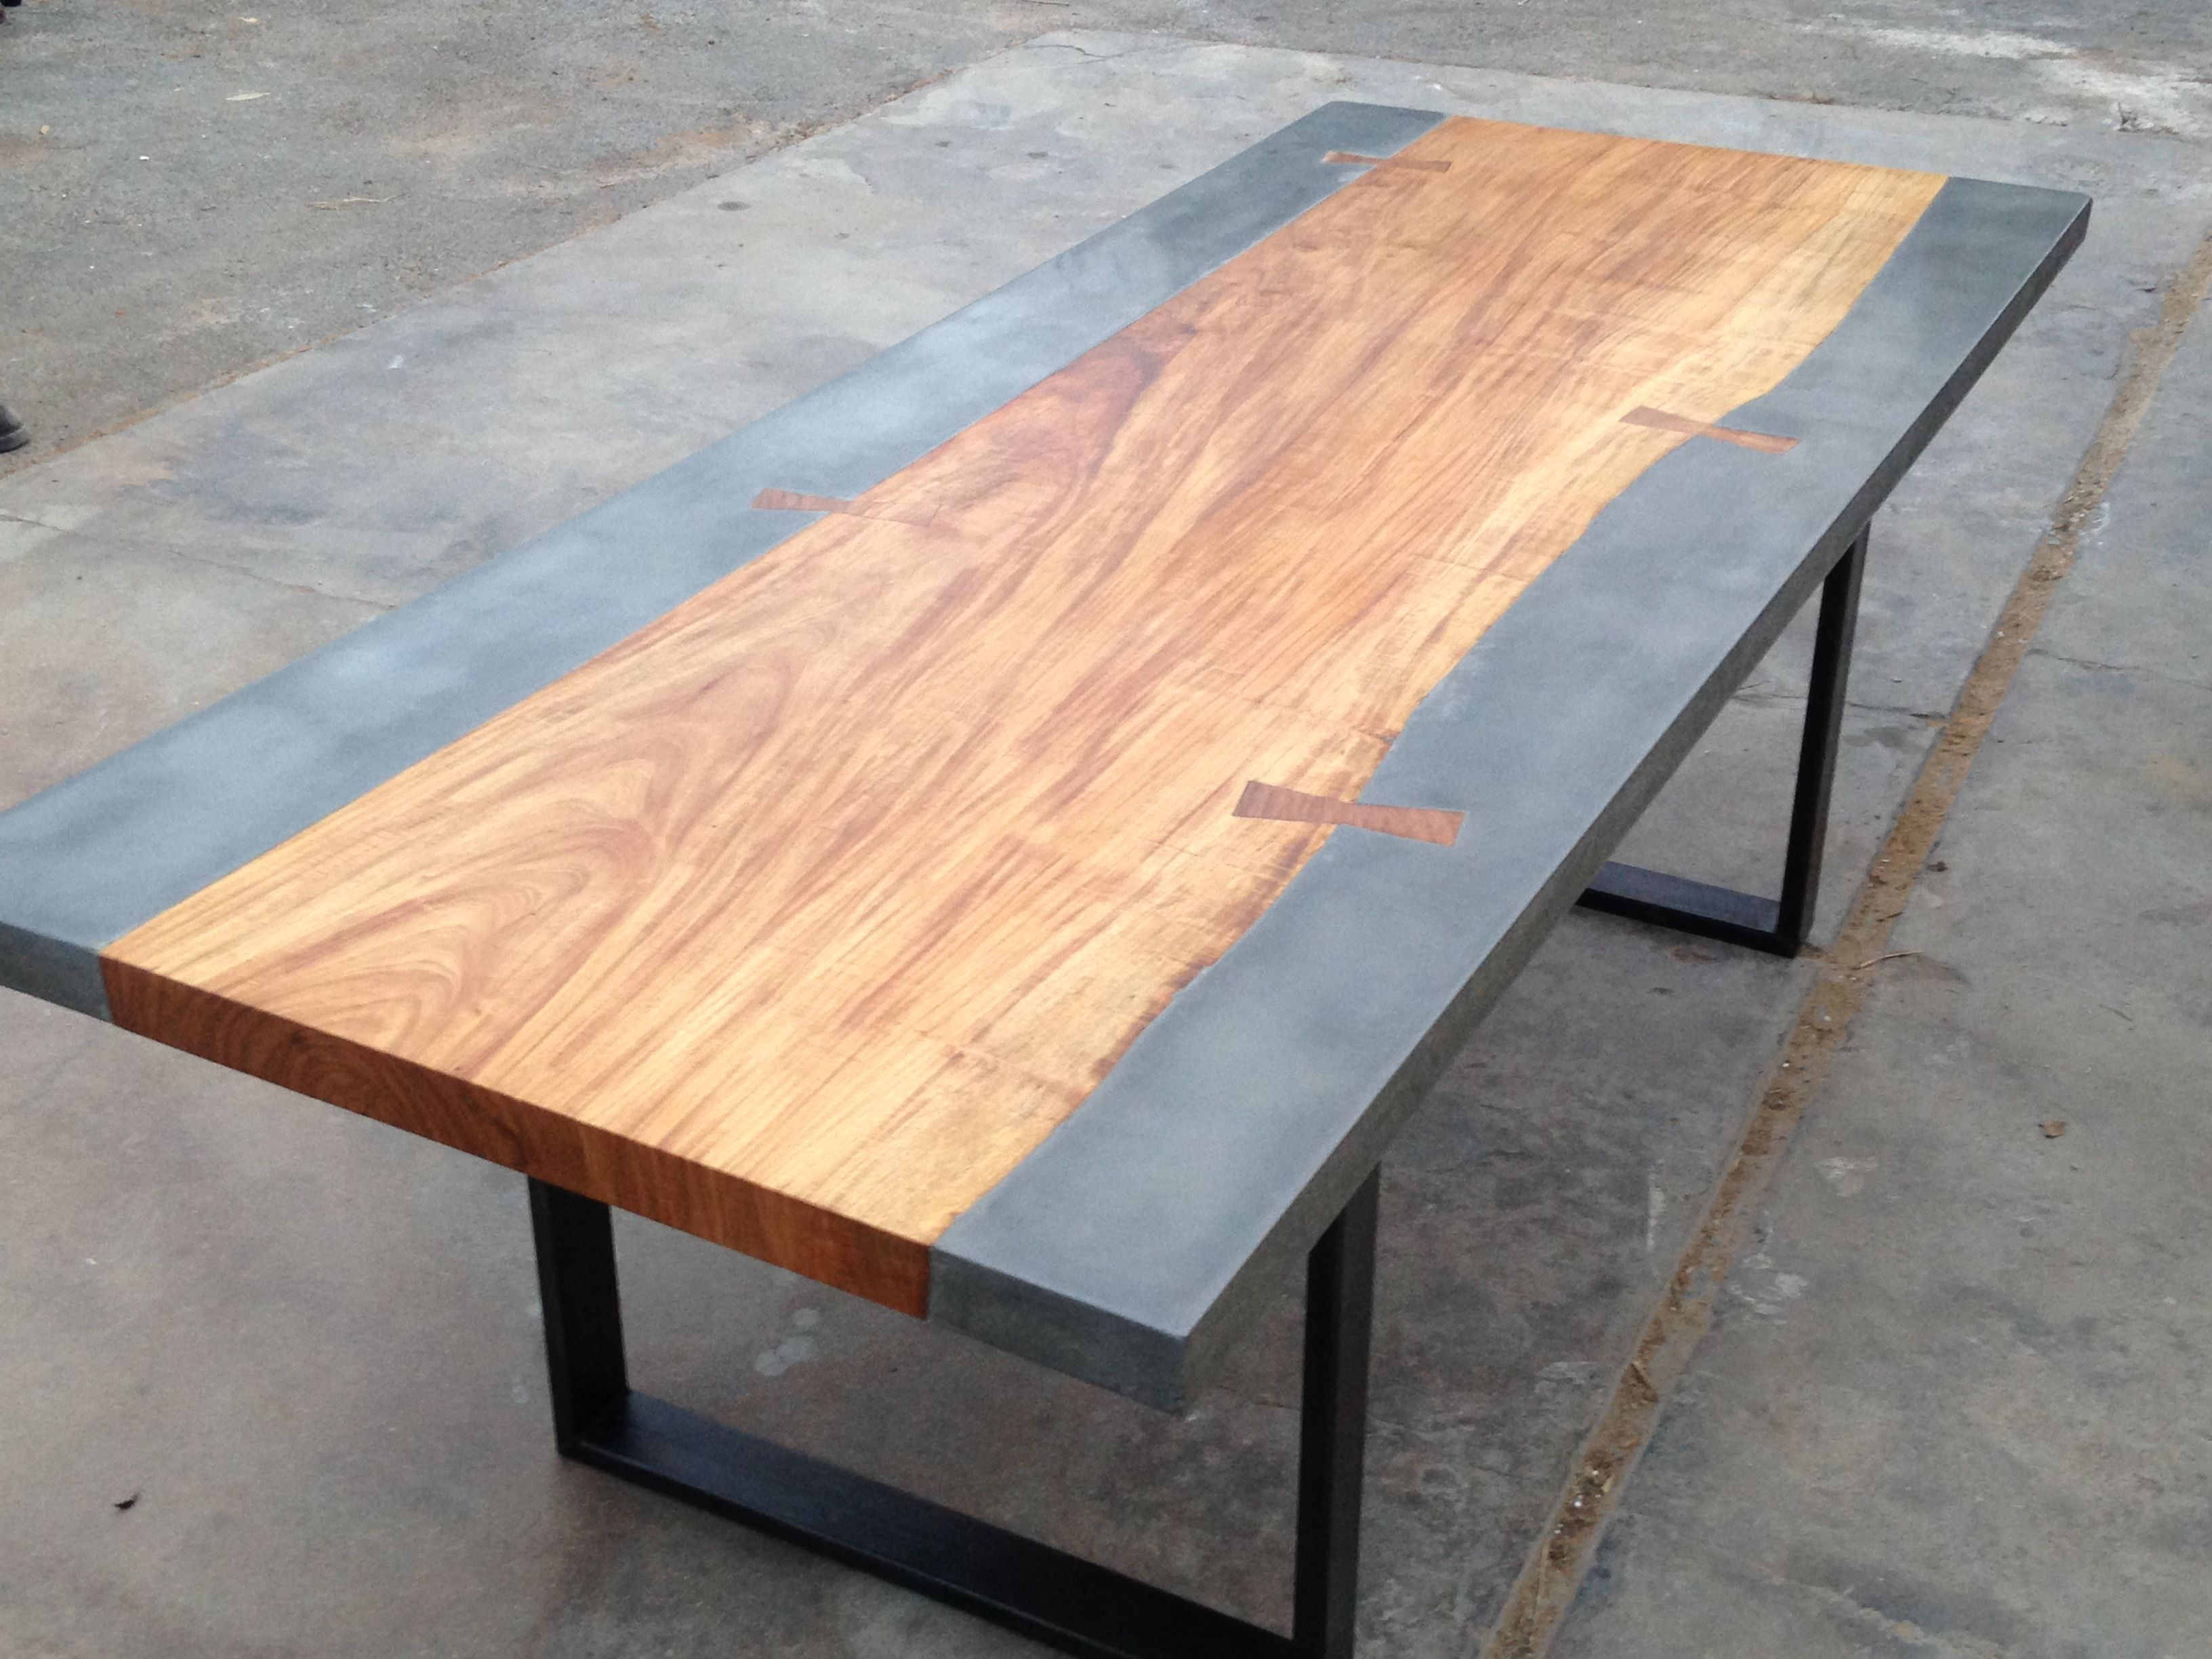 Custom concrete and exotic wood dining conference table by the timber library Concrete and wood furniture